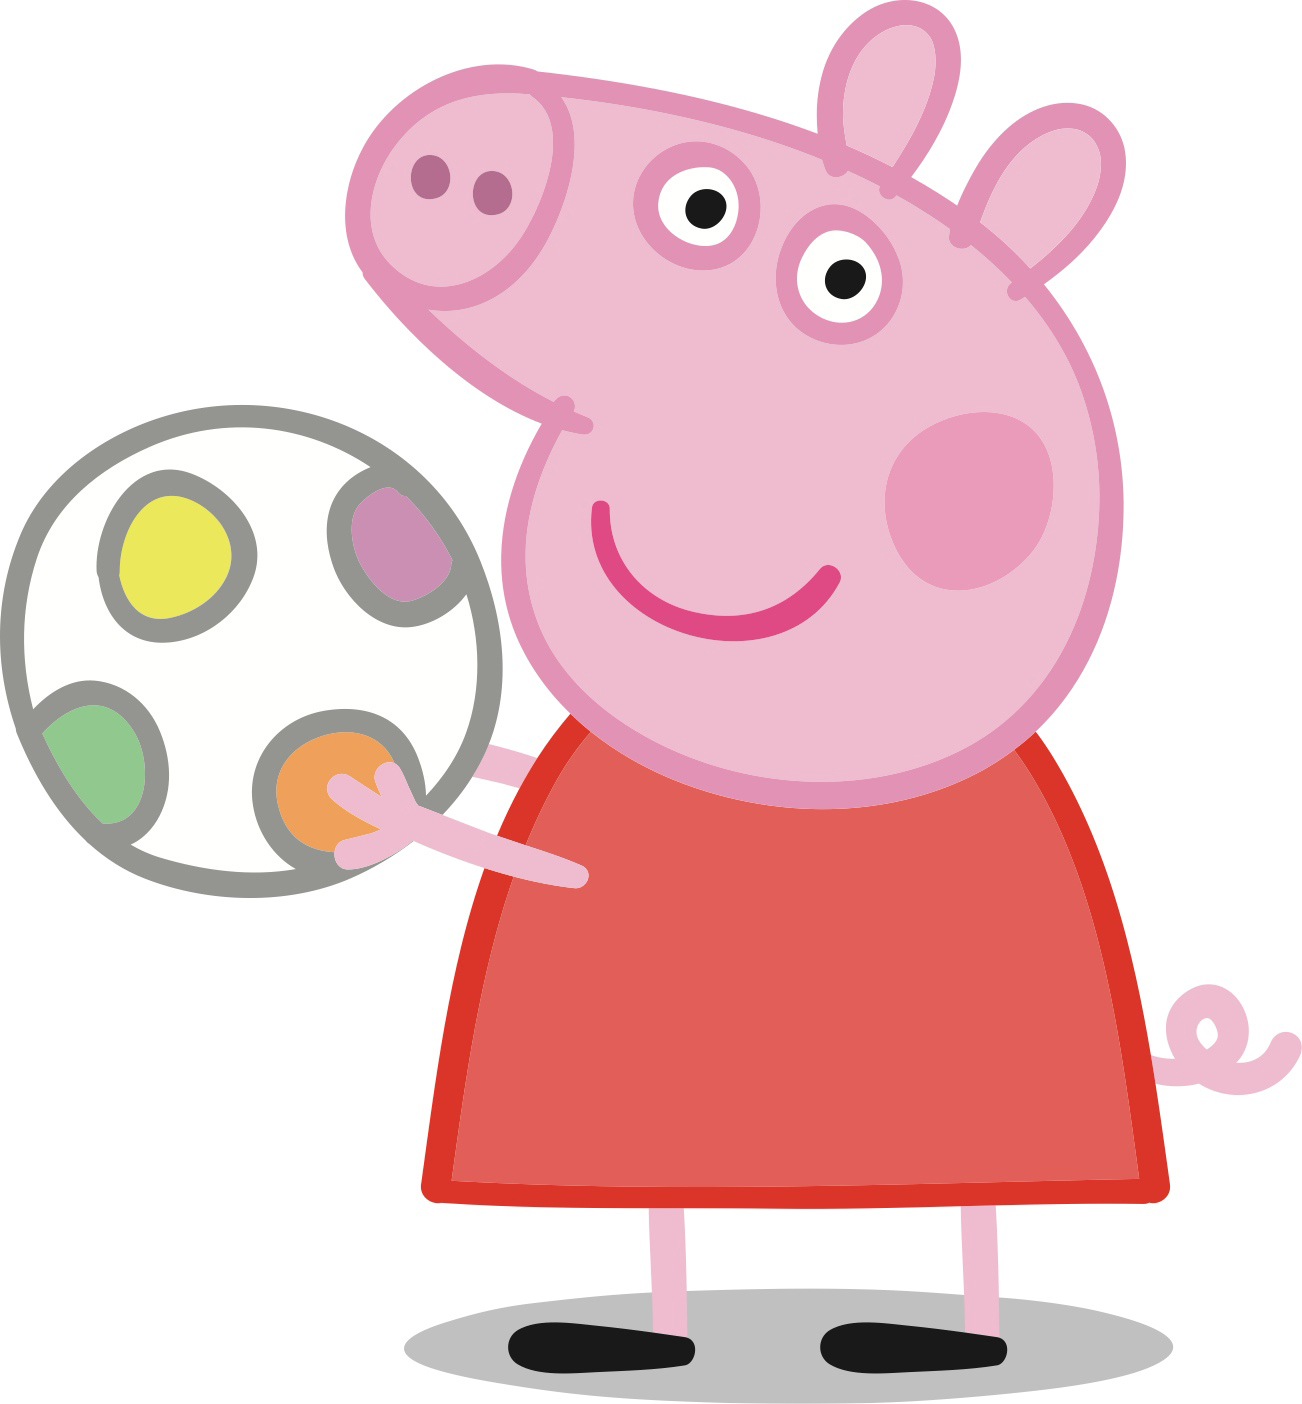 Peppa Pig workout programme to tackle inactivity among toddlers